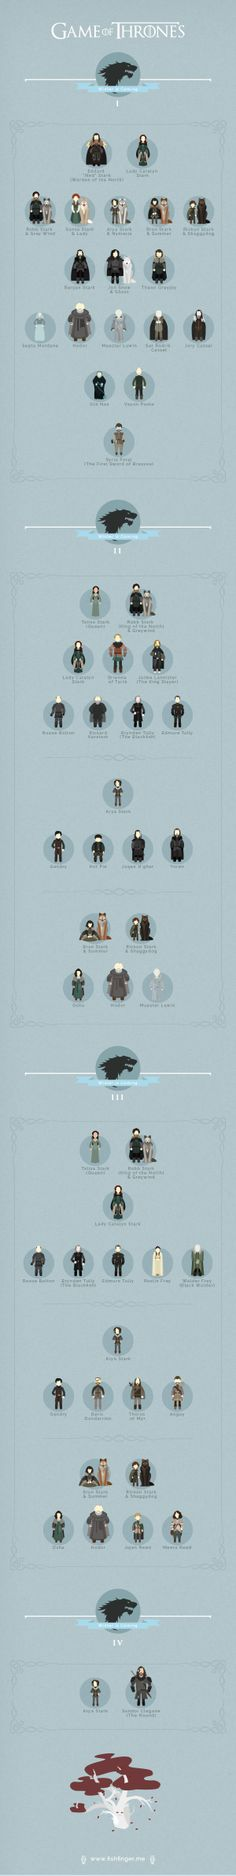 Game of Thrones Infographic on Behance